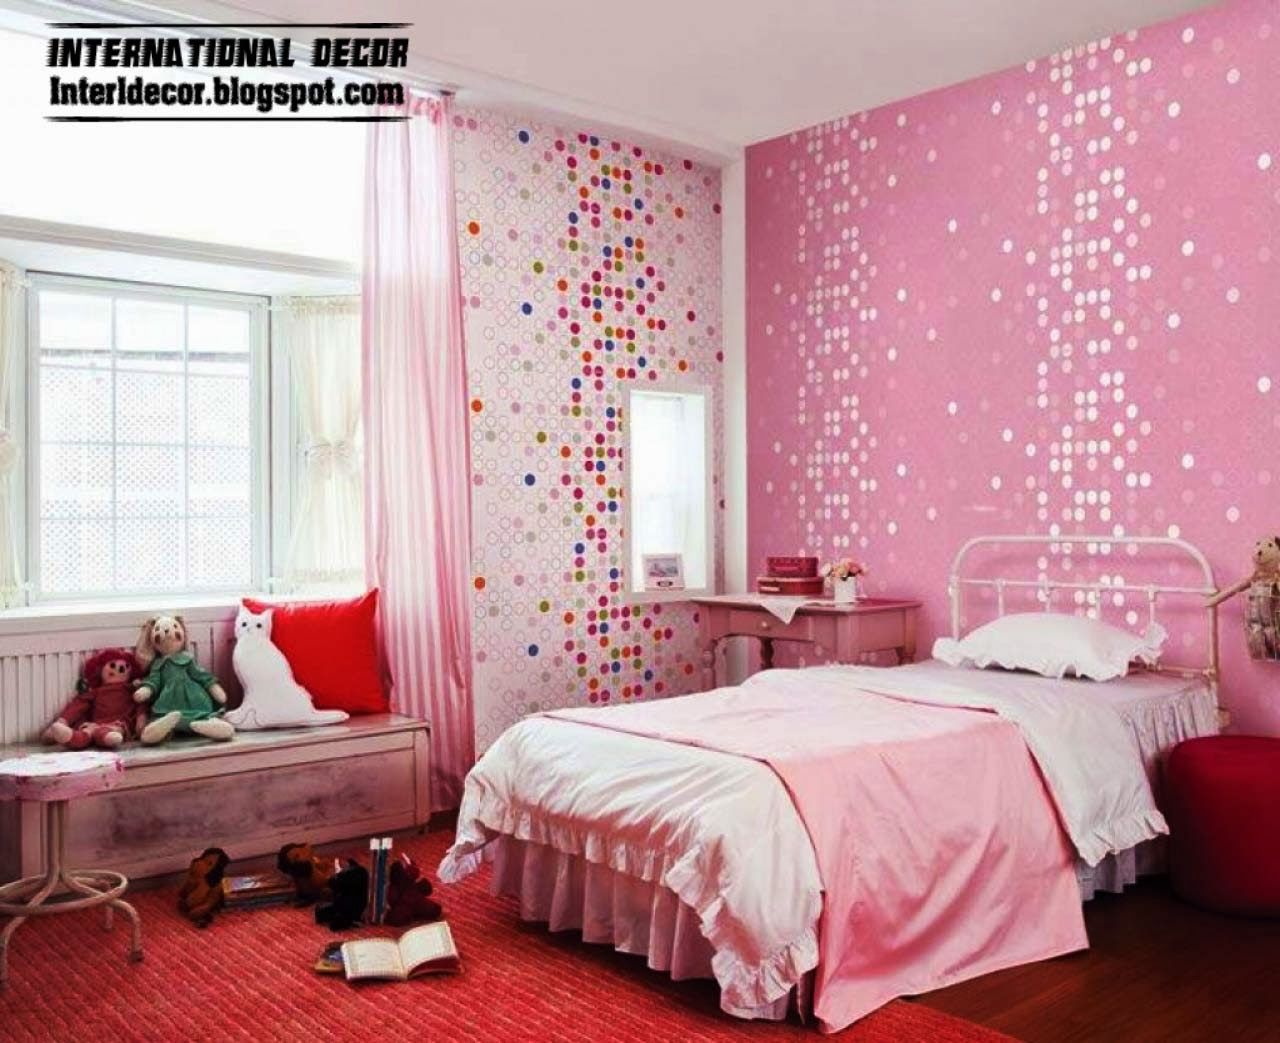 Latest 15 Images Of Pink Girls Bedroom Ideas In Modern Design, With Inspire  Ideas Of Pink Paint And Furniture In Girls Room , Modern Pink Girls Bedroom  ...